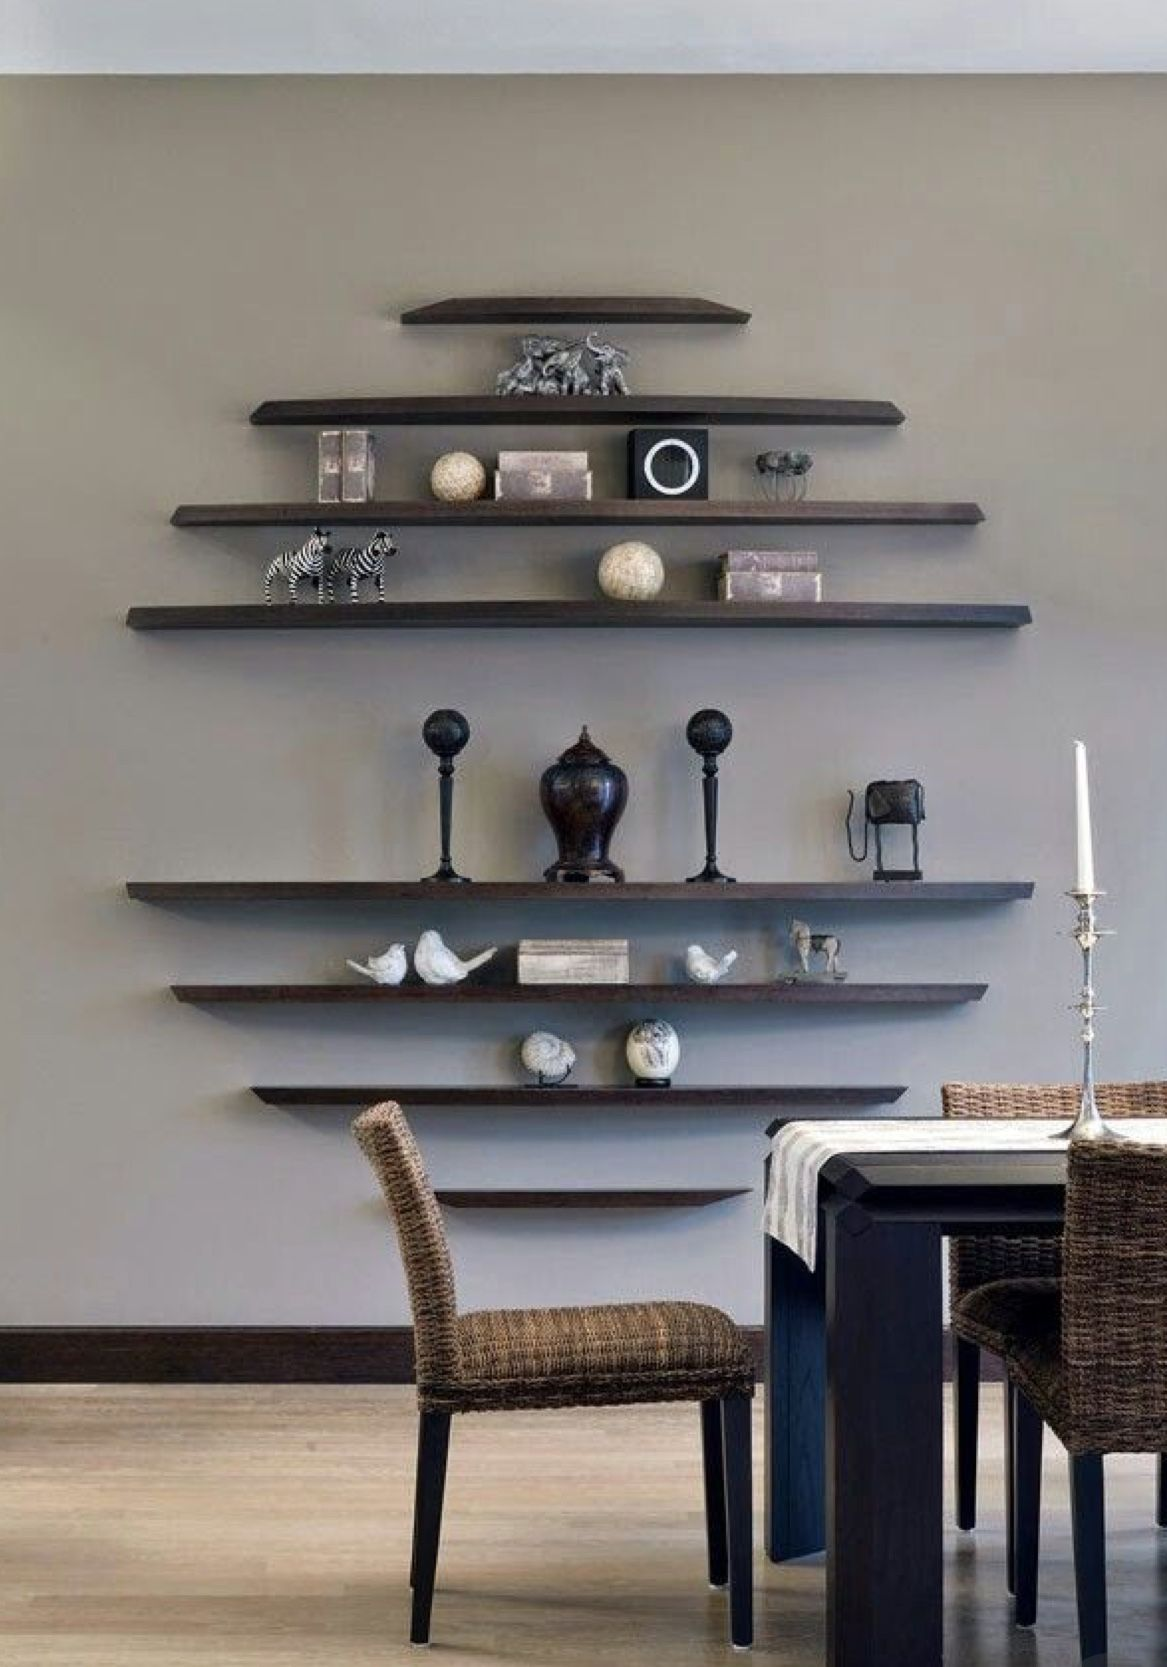 This Could Be Great In A Square Or Even By Doing A Half Circle With The Mac Logo On Top To Complete The Circle Home Decor Decor Shelves